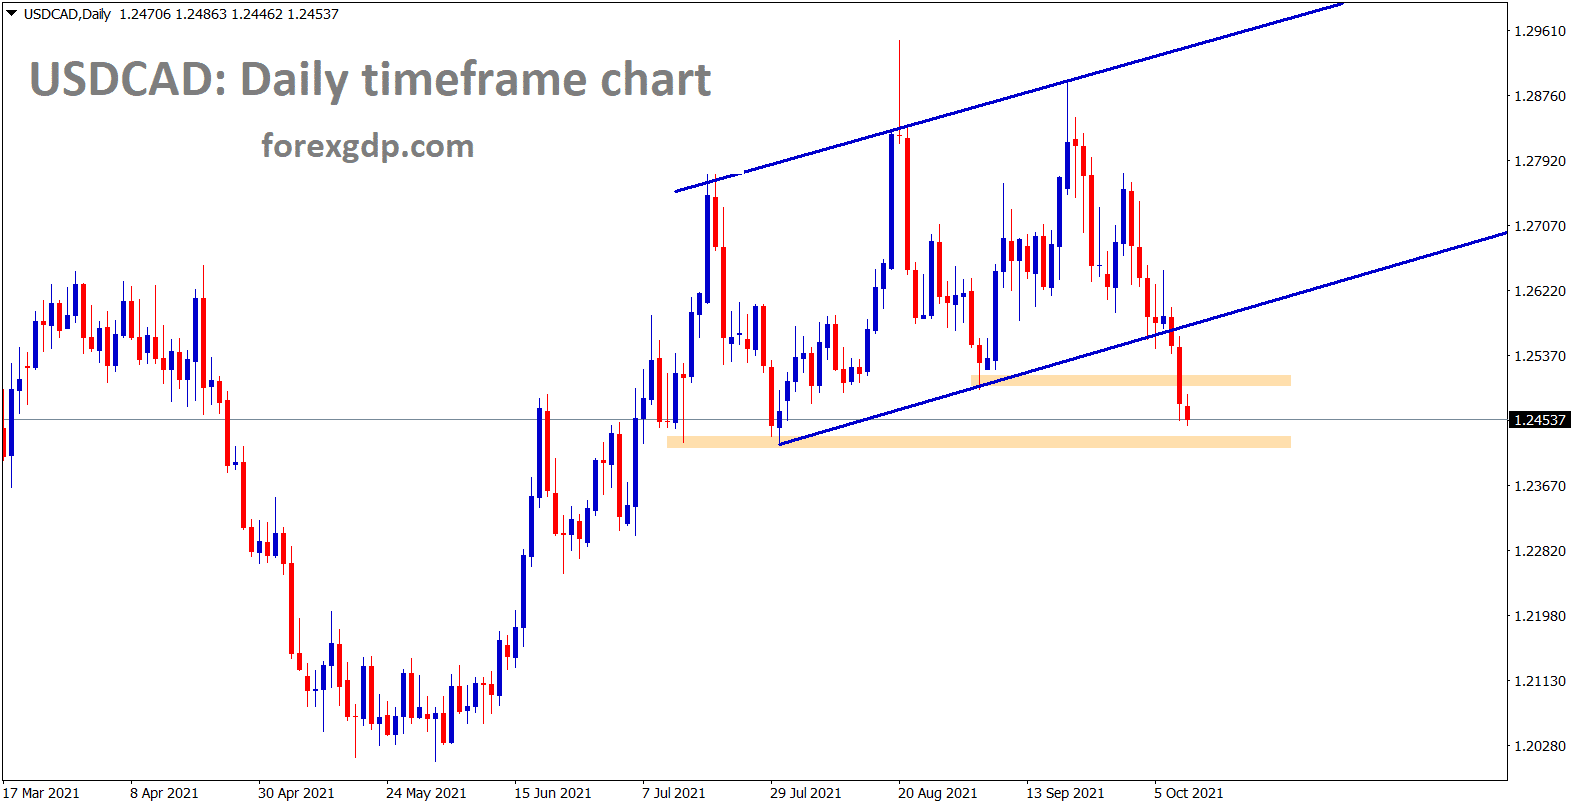 USDCAD is moving towards the next major support area